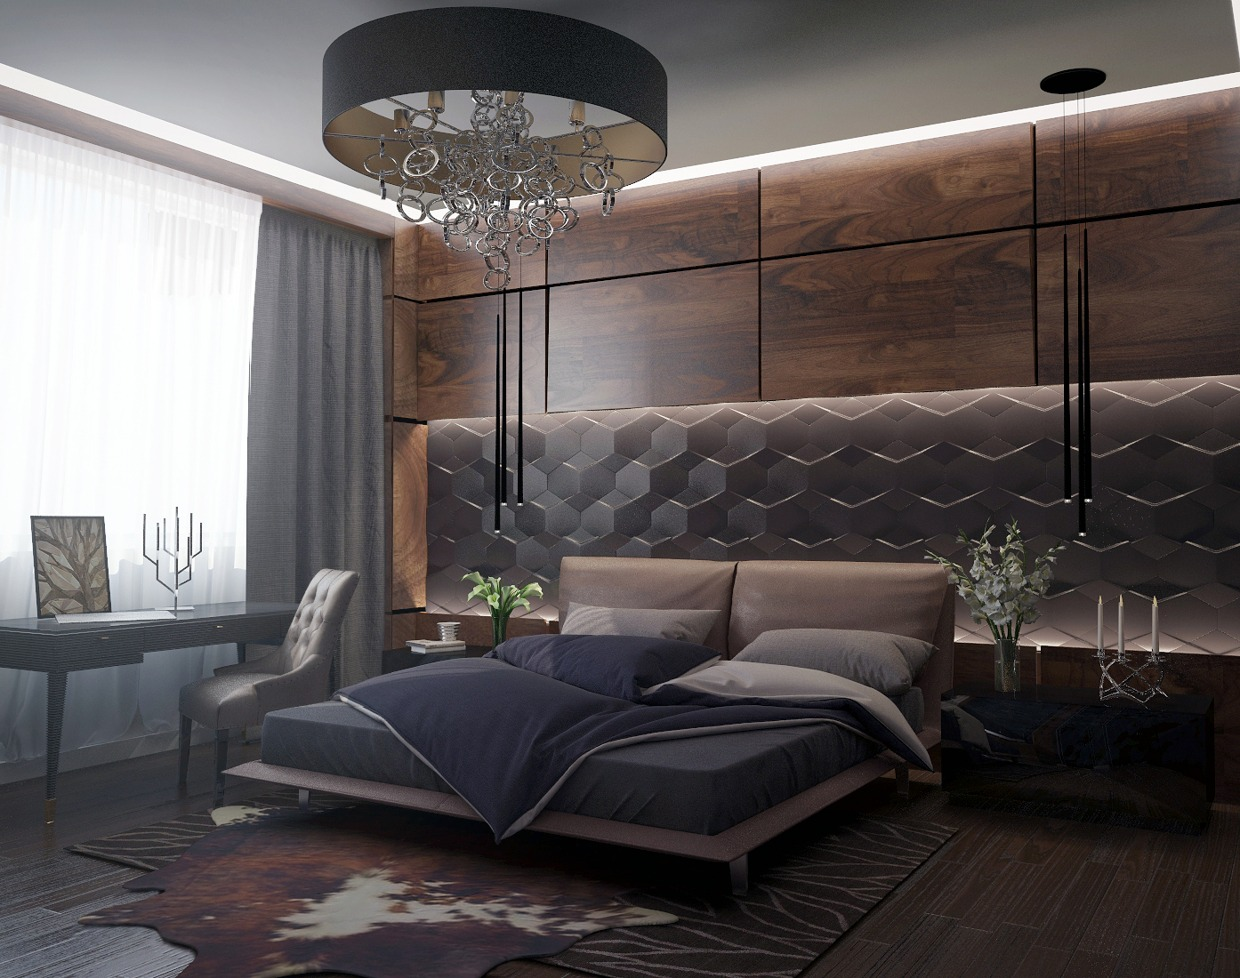 Lederwand Schlafzimmer Bedroom Walnut Wall Texture Interior Design Ideas